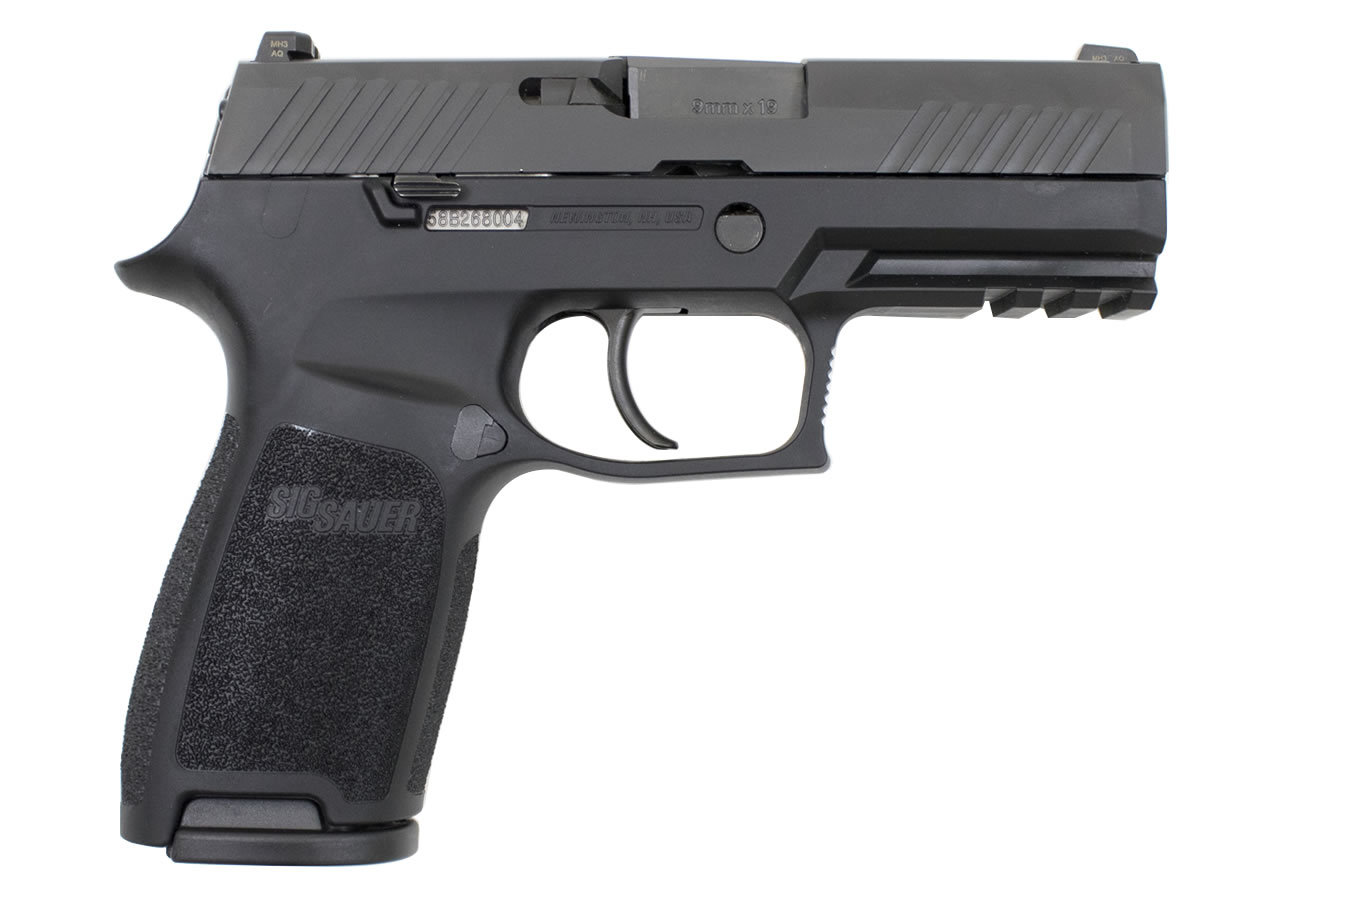 Sig Sauer P320 Carry 9mm Striker Fired Pistol With 3